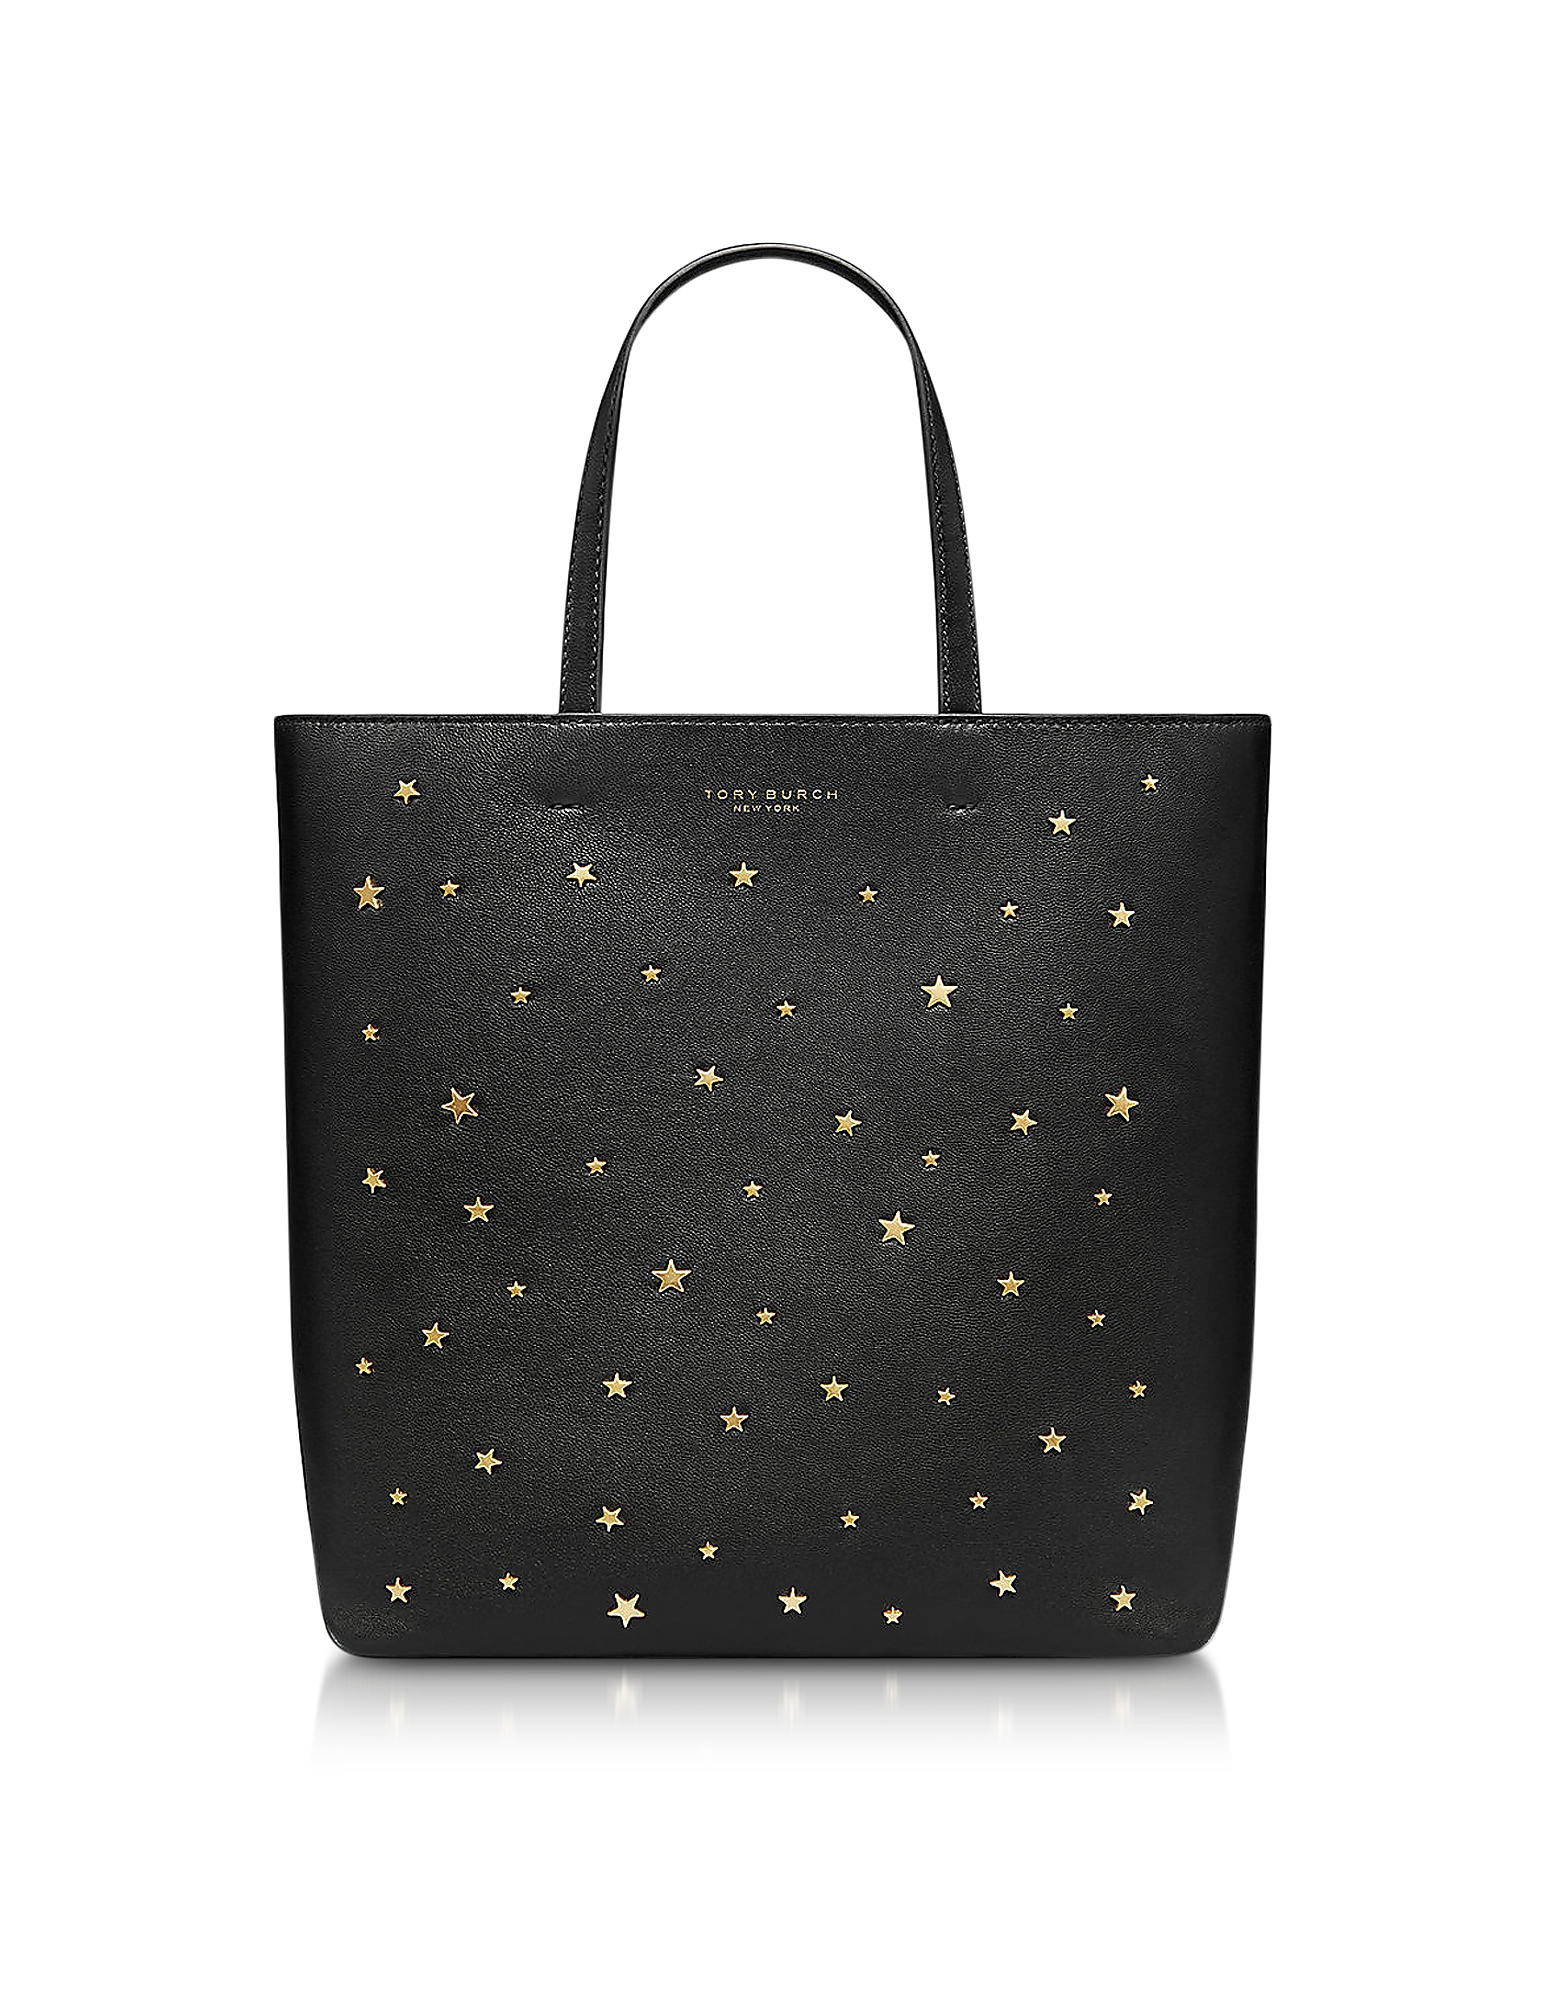 Tory Burch Leathers BLACK STAR STUDS SMALL TOTE BAG